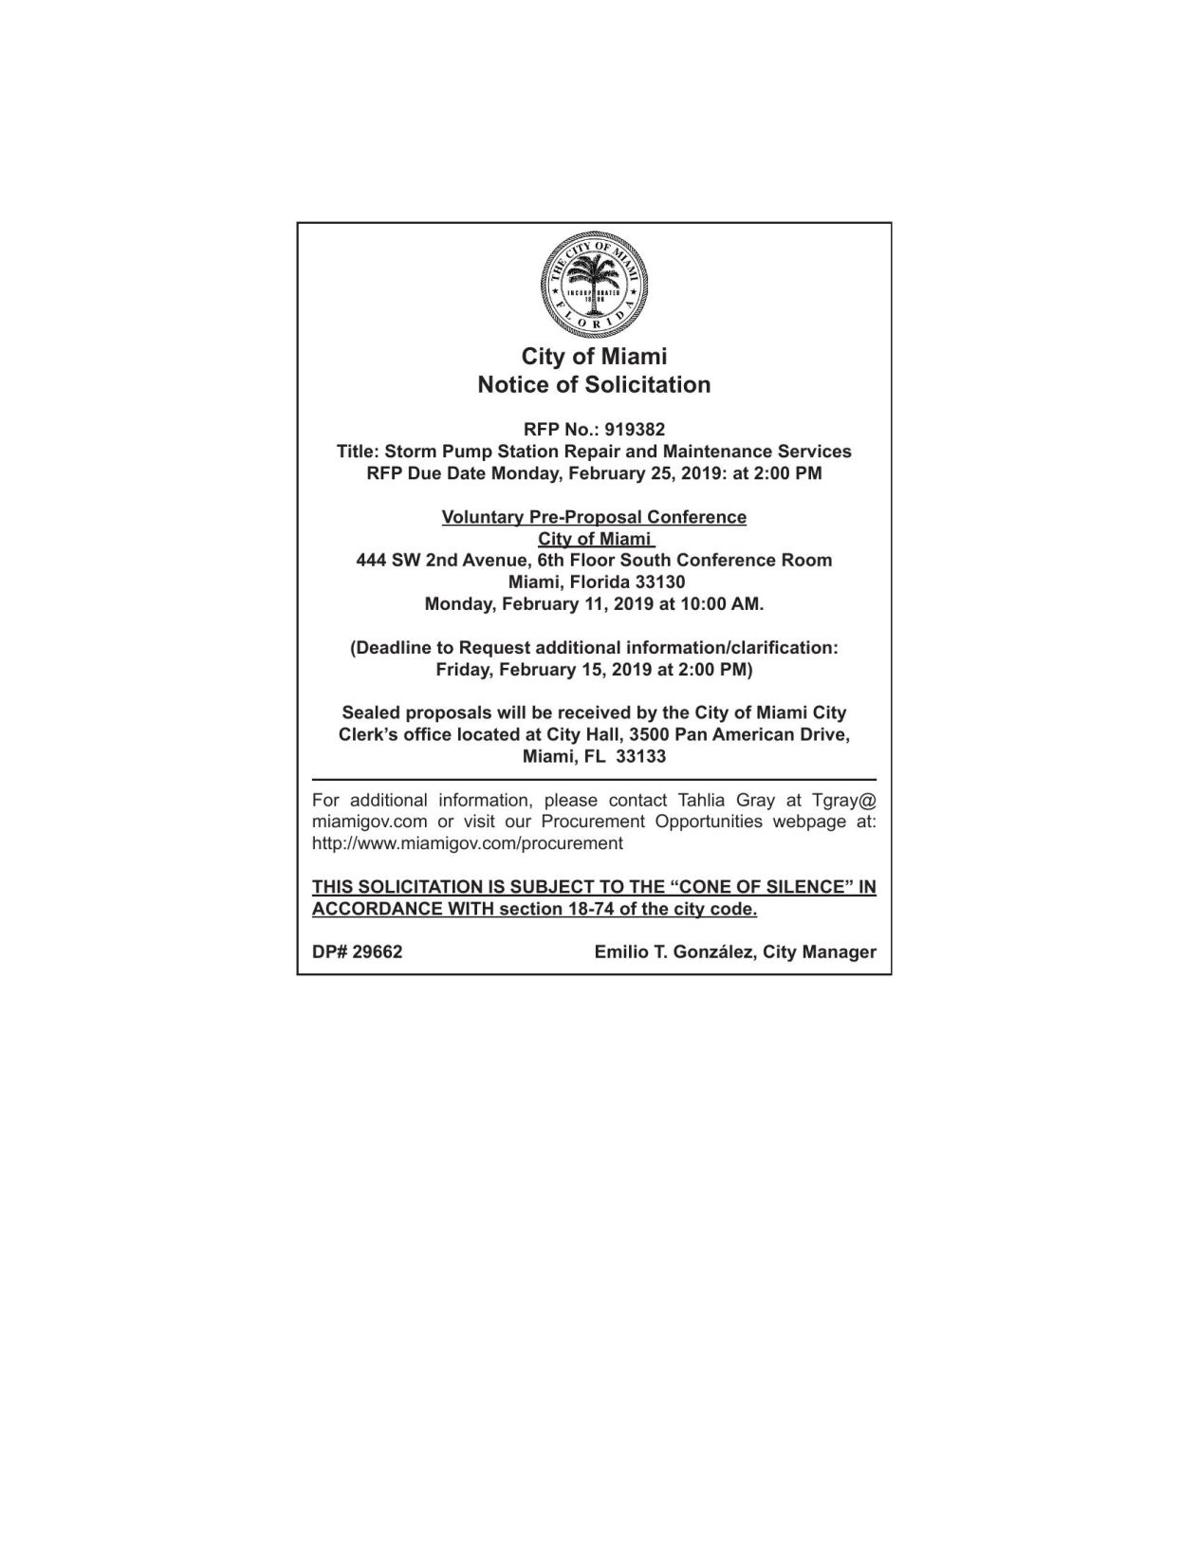 City of Miami Notice of Solicitation RFP No.: 919382